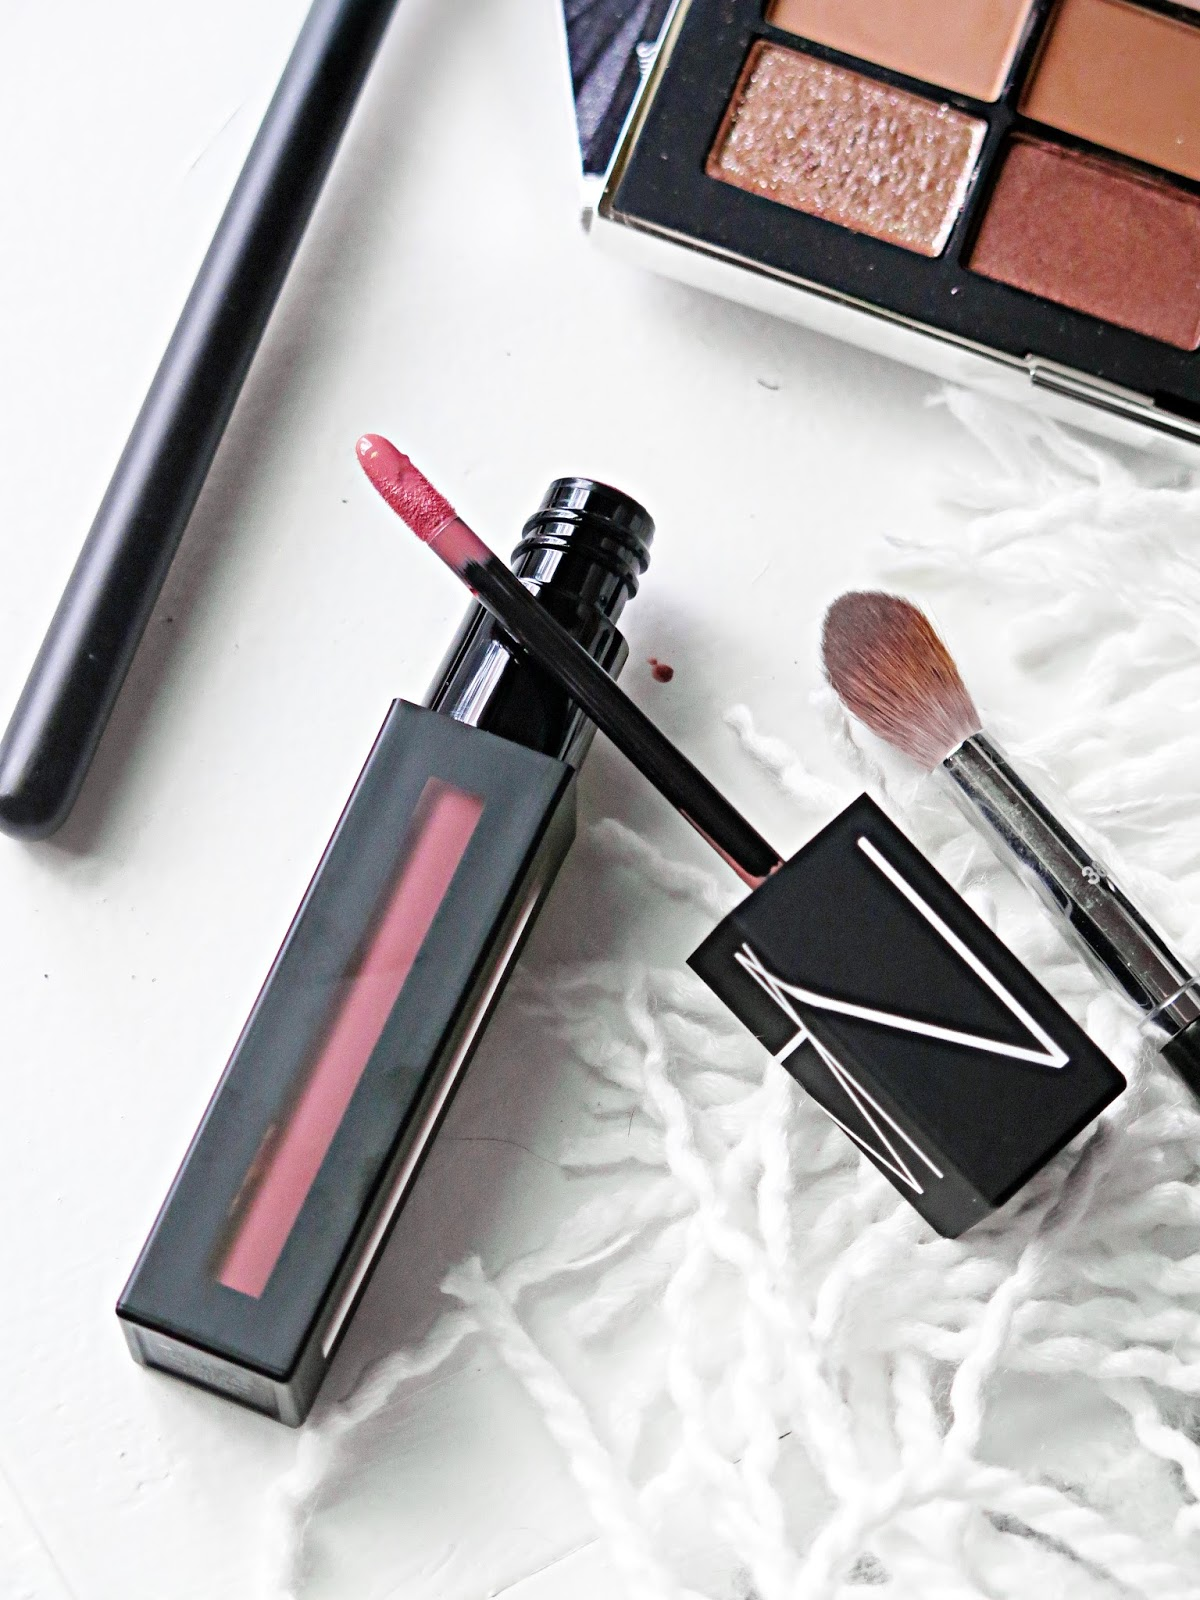 Two New Favs From Nars Cosmetics | NARSISSIST Wanted Eyeshadow Palette & PowerMatte Lip Pigments | Review & Swatches | labellesirene.ca